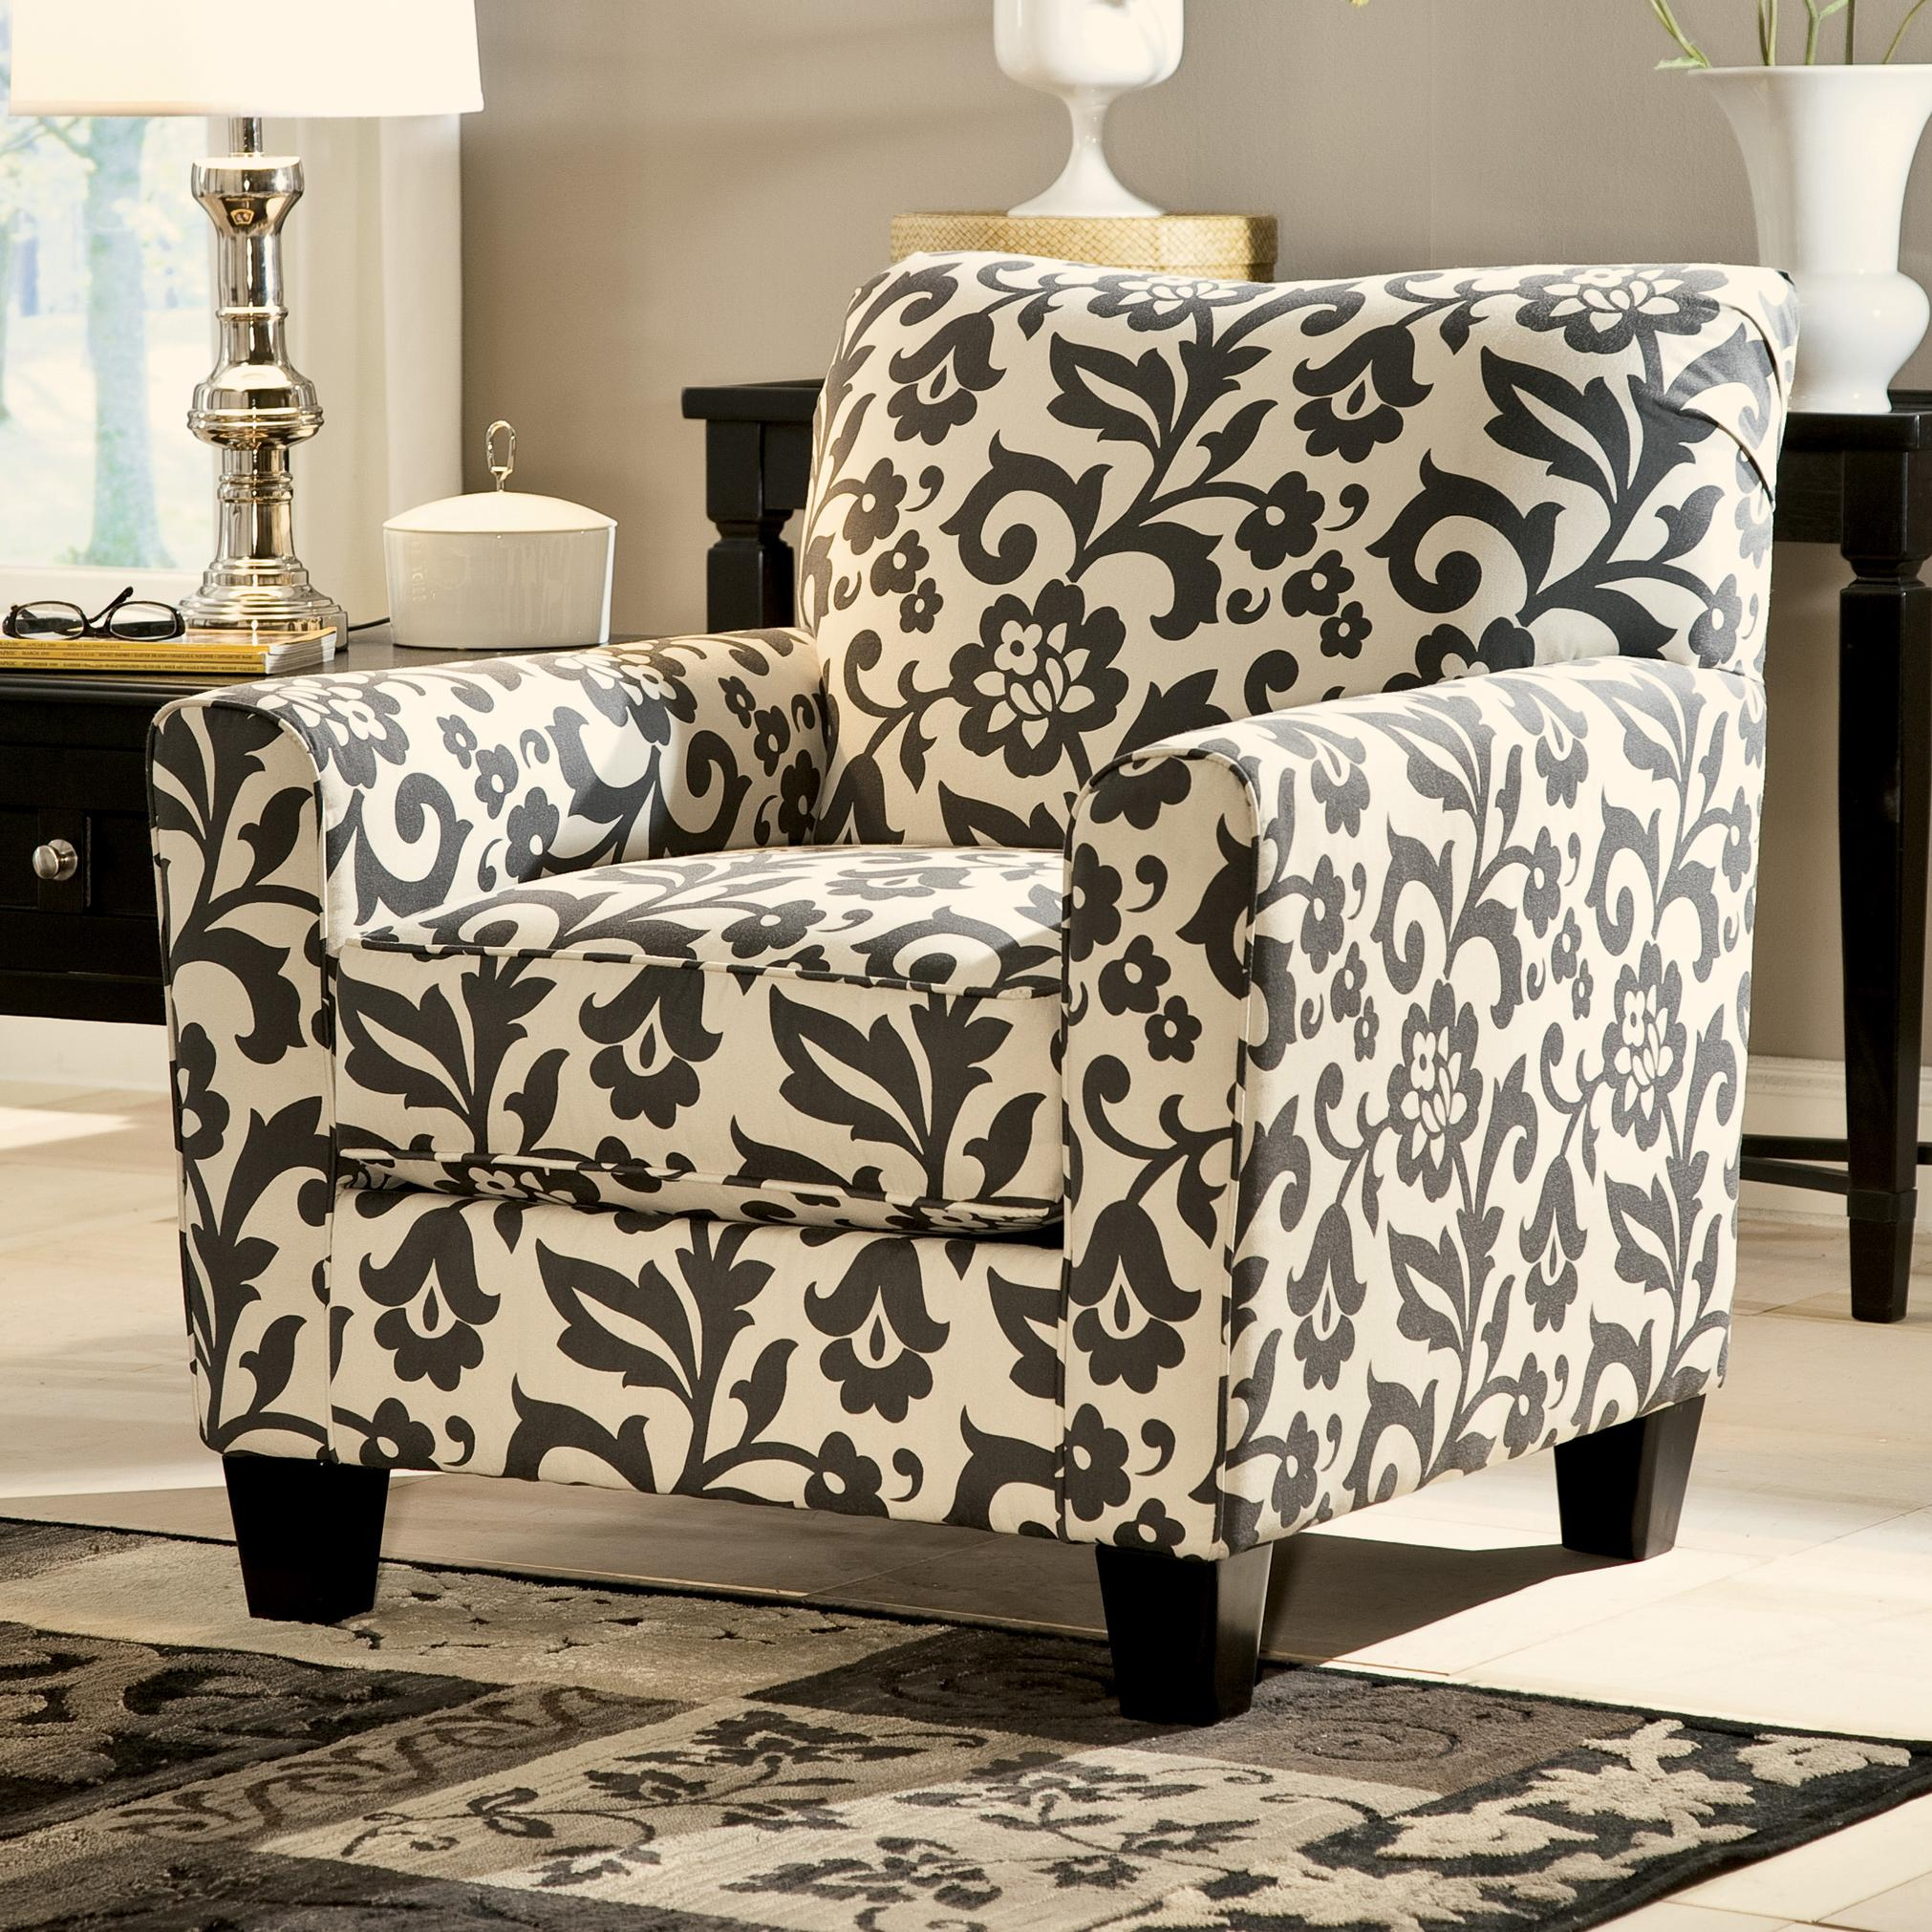 Floral Chairs Signature Design By Ashley Levon Charcoal 7340321 Accent